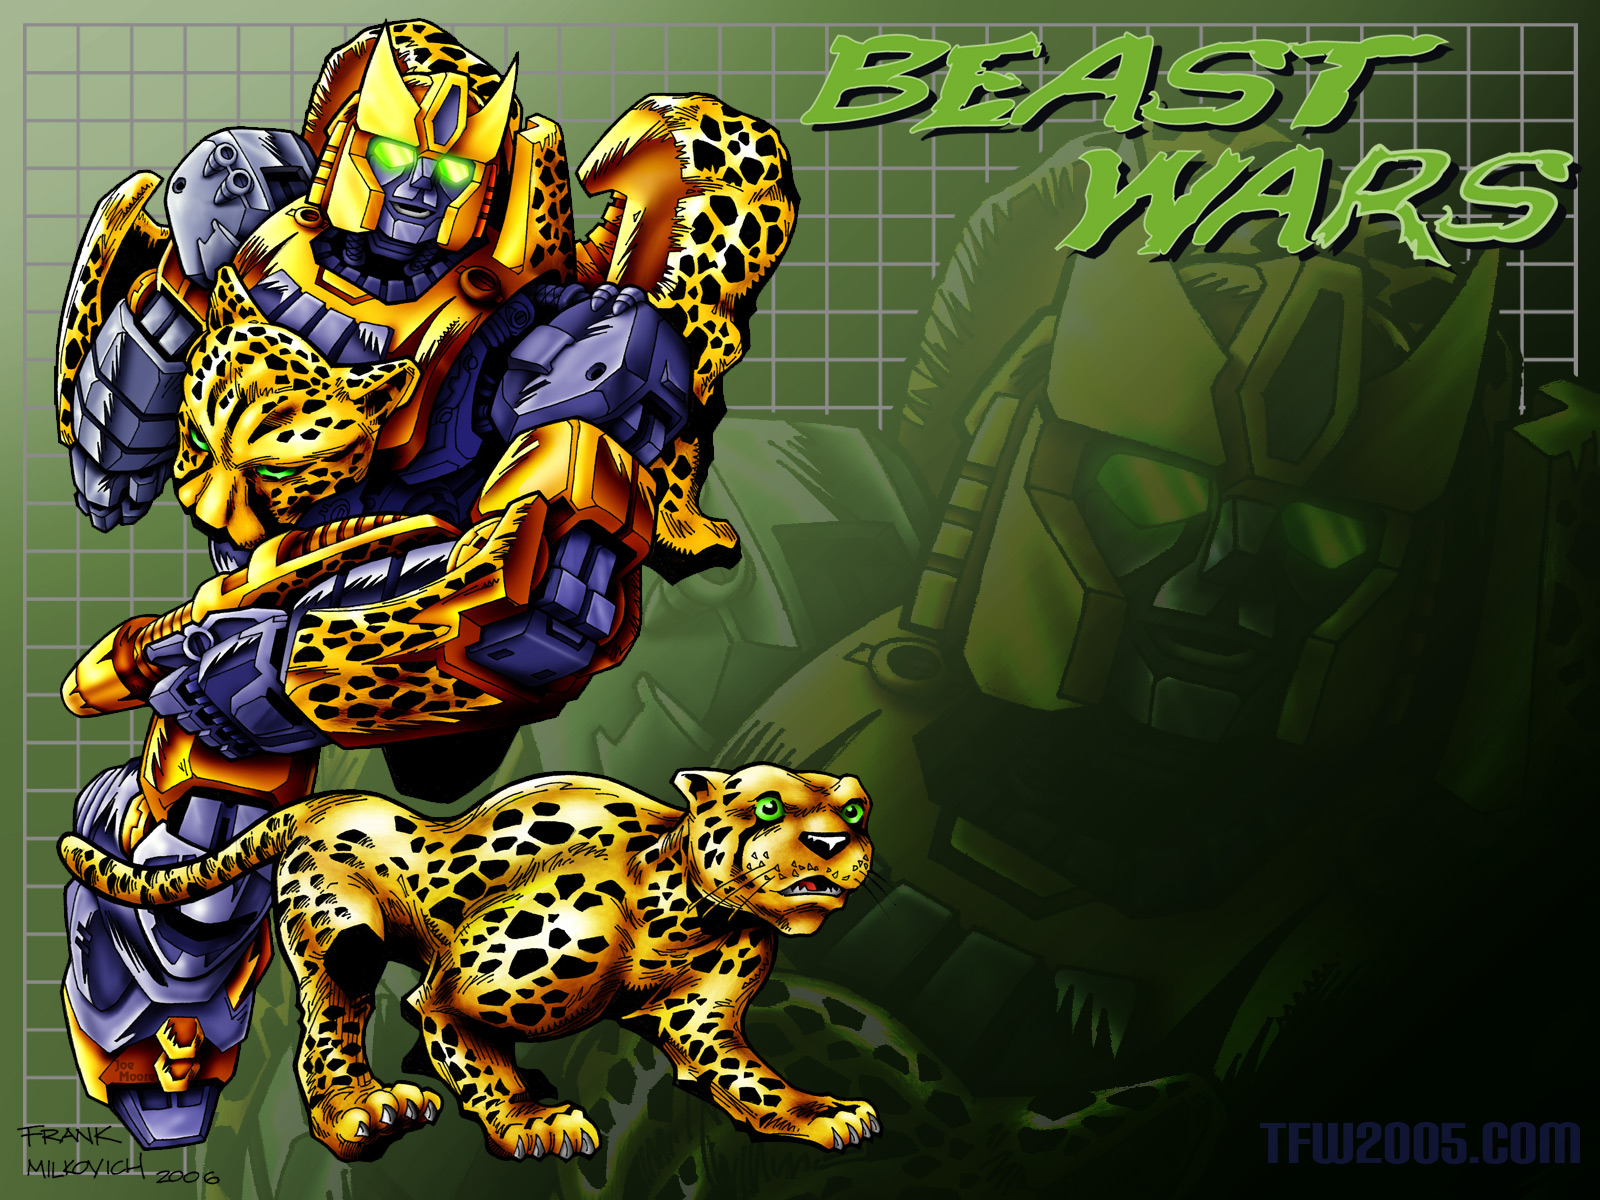 Transformers: Beast Wars HD Wallpapers  Backgrounds  Wallpaper Abyss